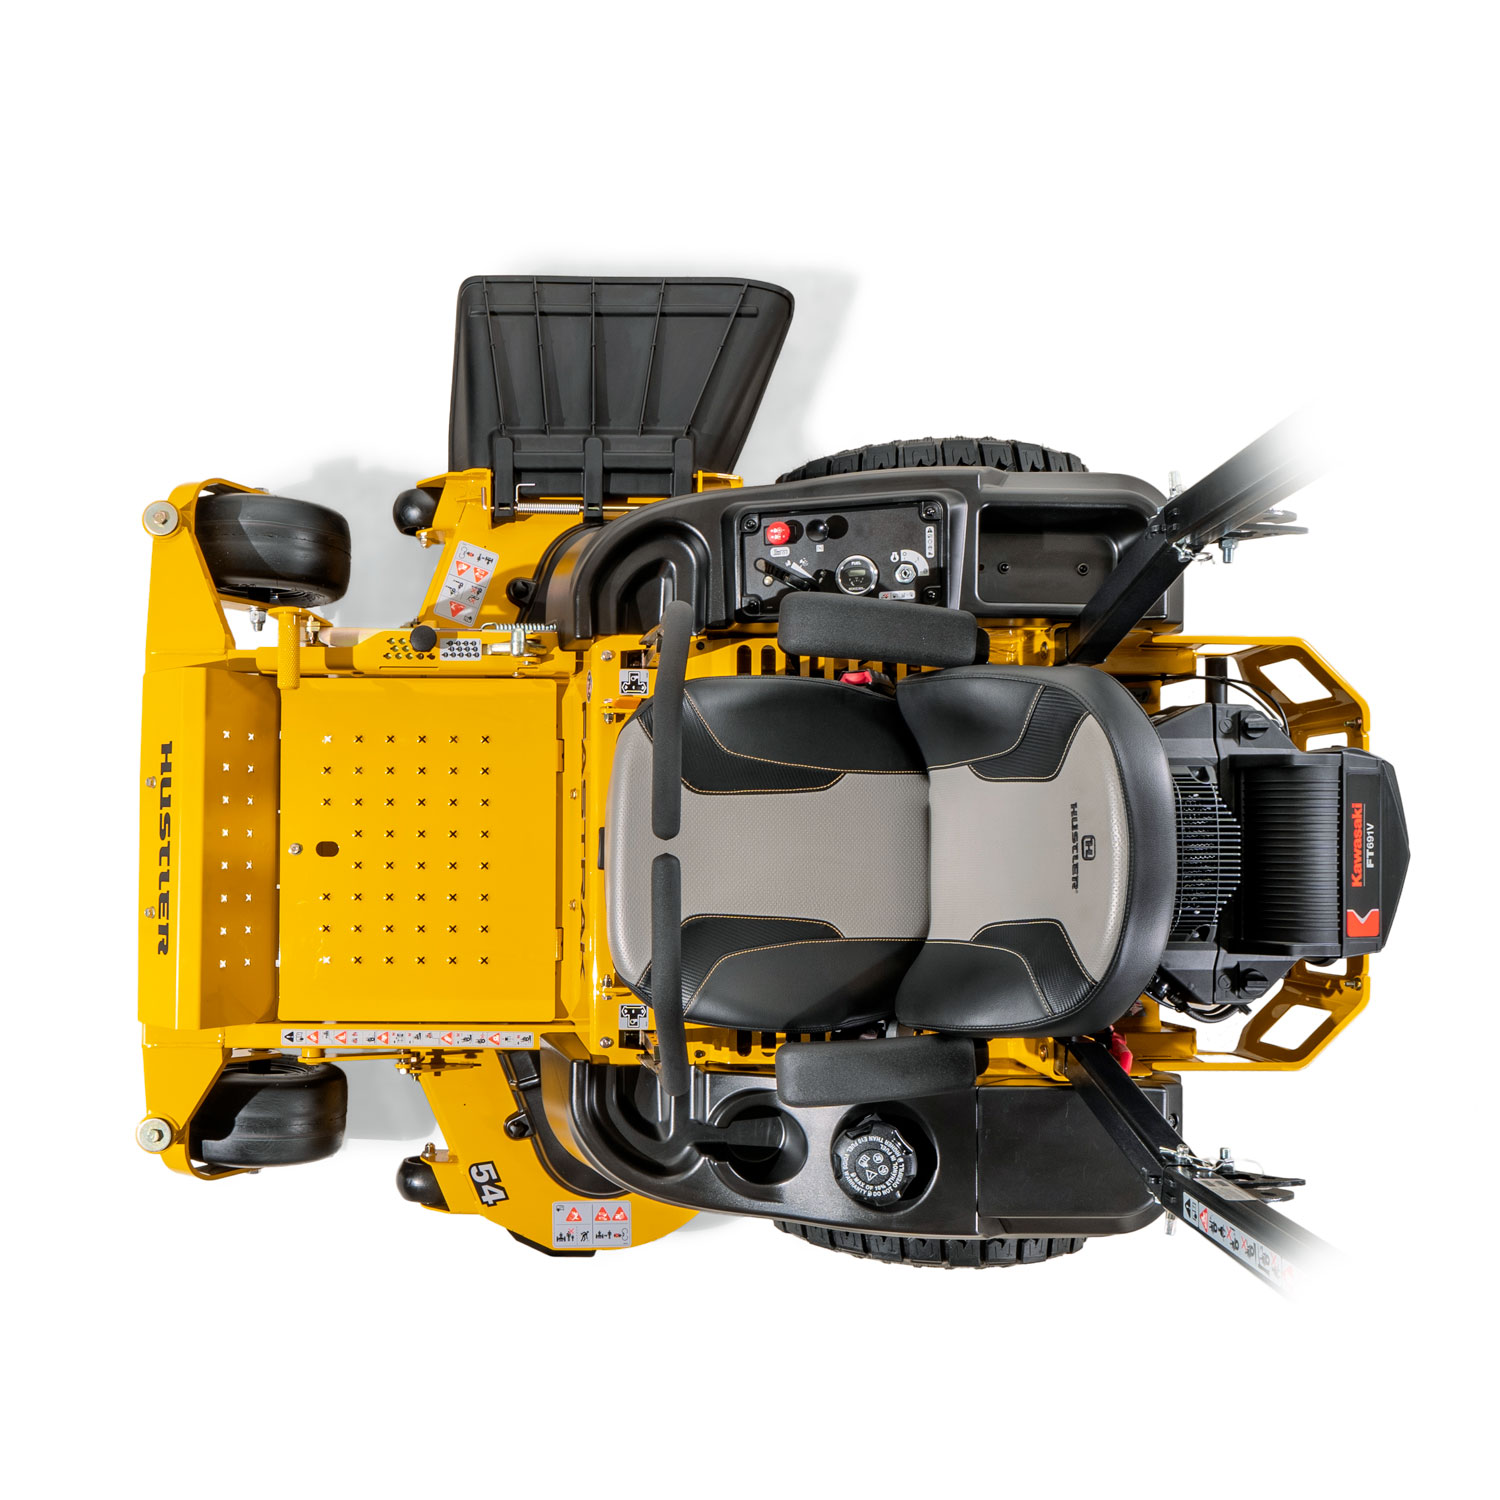 Image of a yellow mower from above